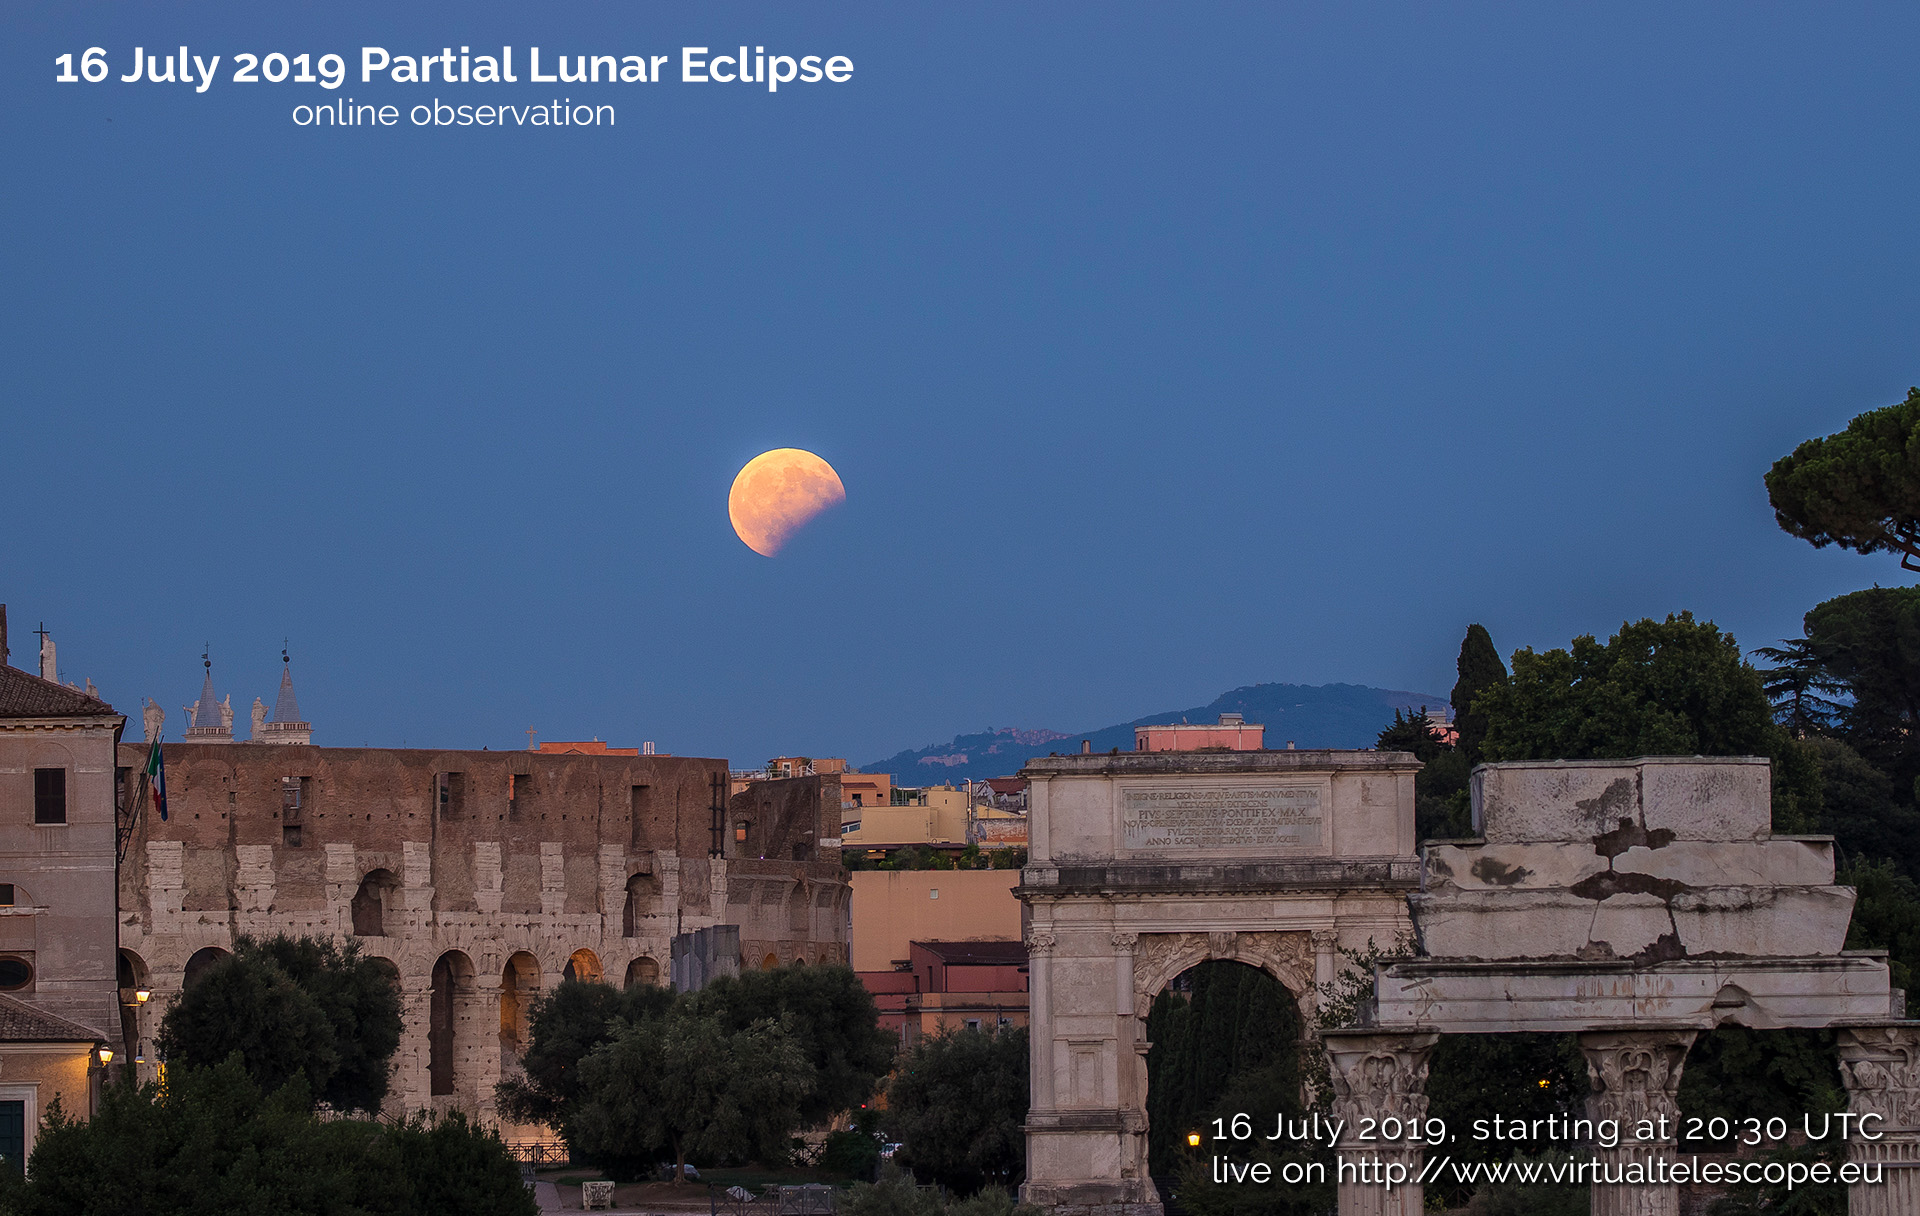 The 16 July 2019 partial lunar eclipse - poster of the event